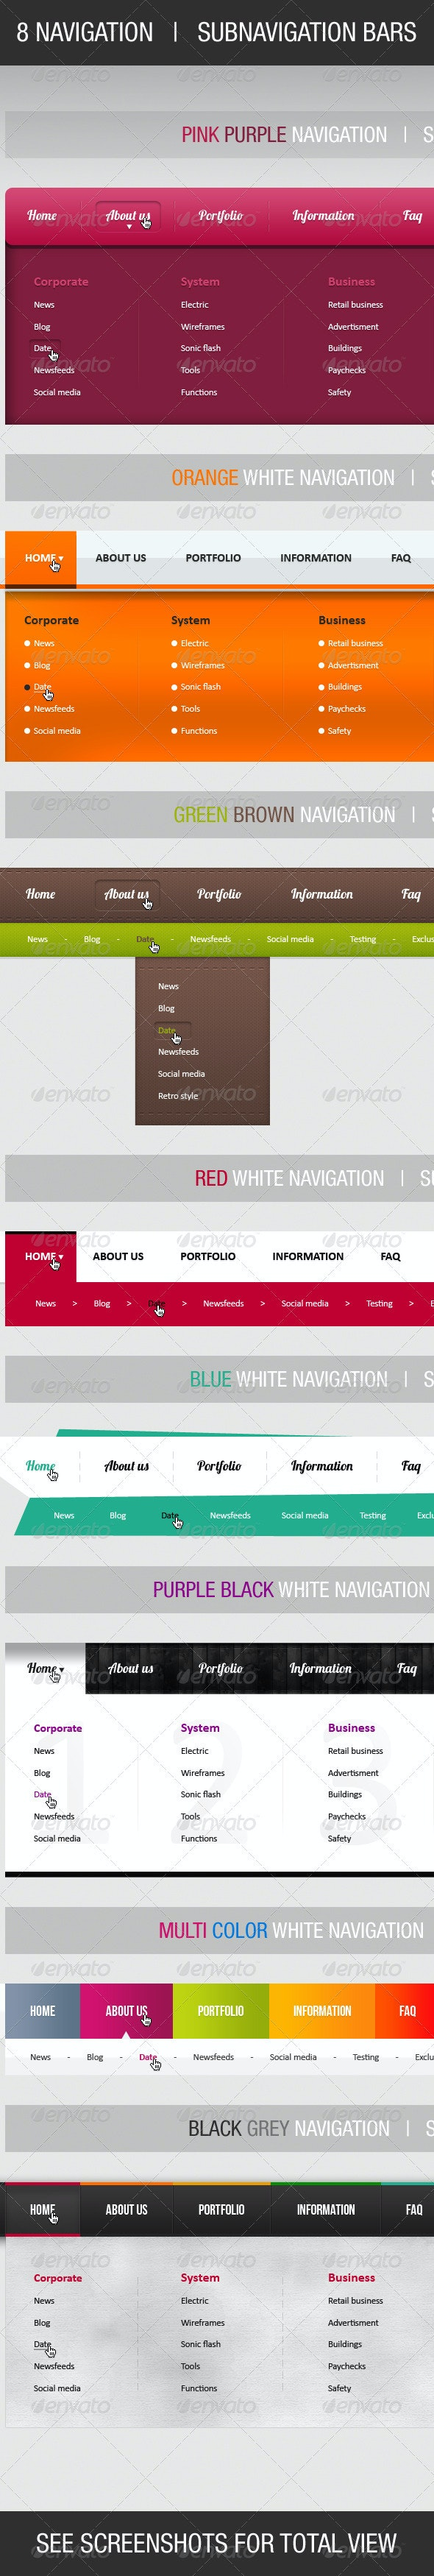 8 Colorfull Navigation & Subnavigation Bars - Navigation Bars Web Elements